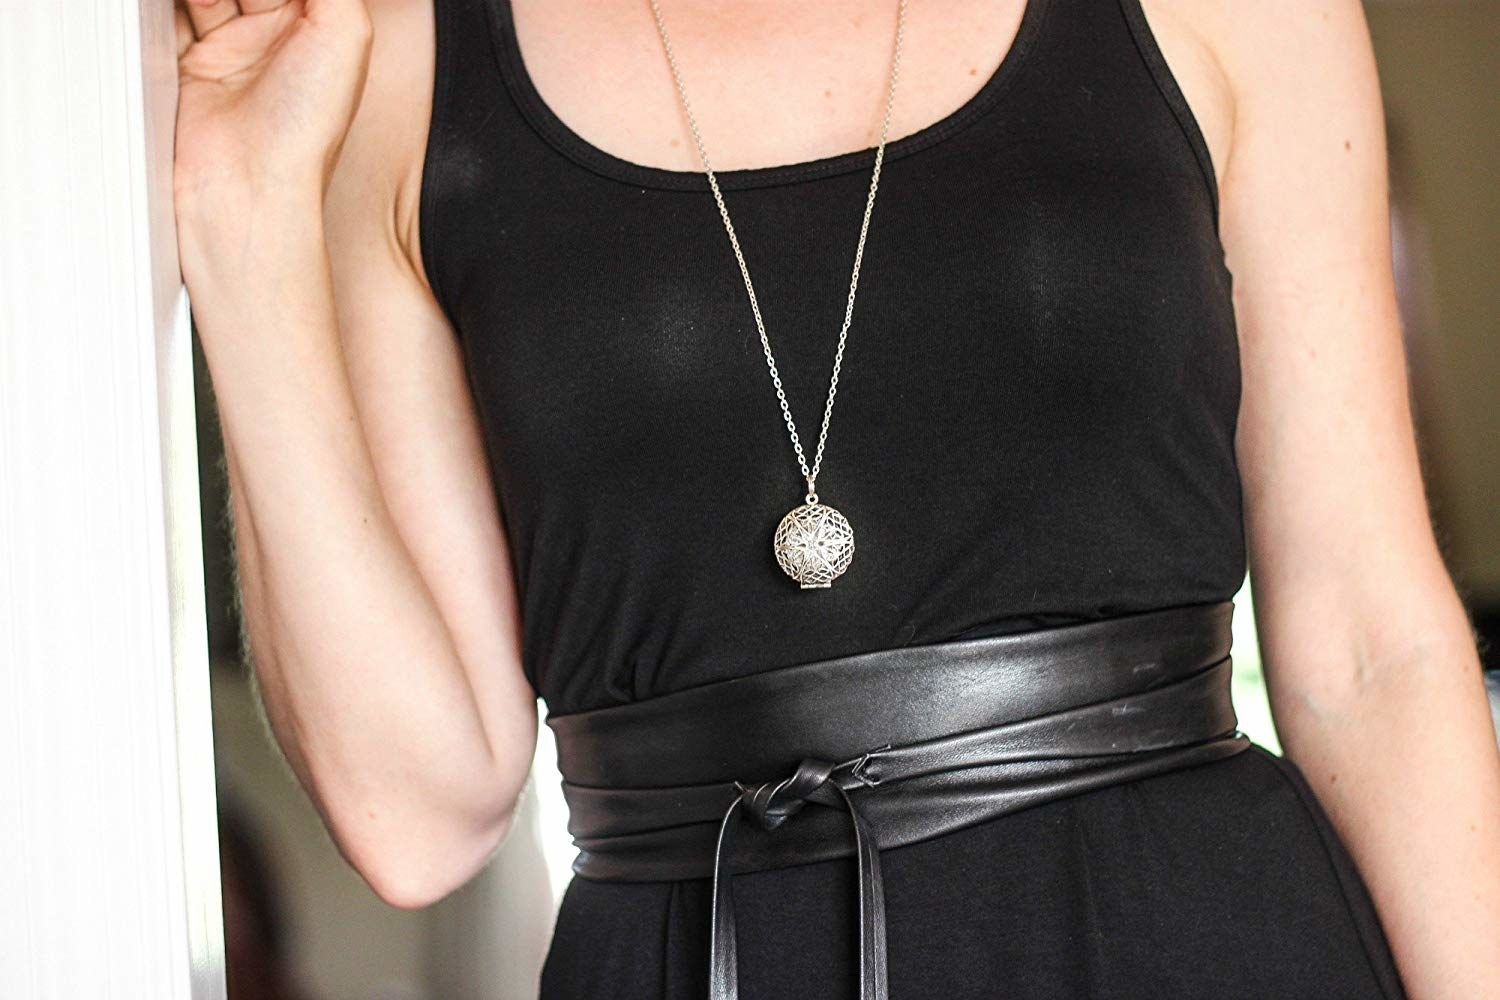 Model wearing the round pendant